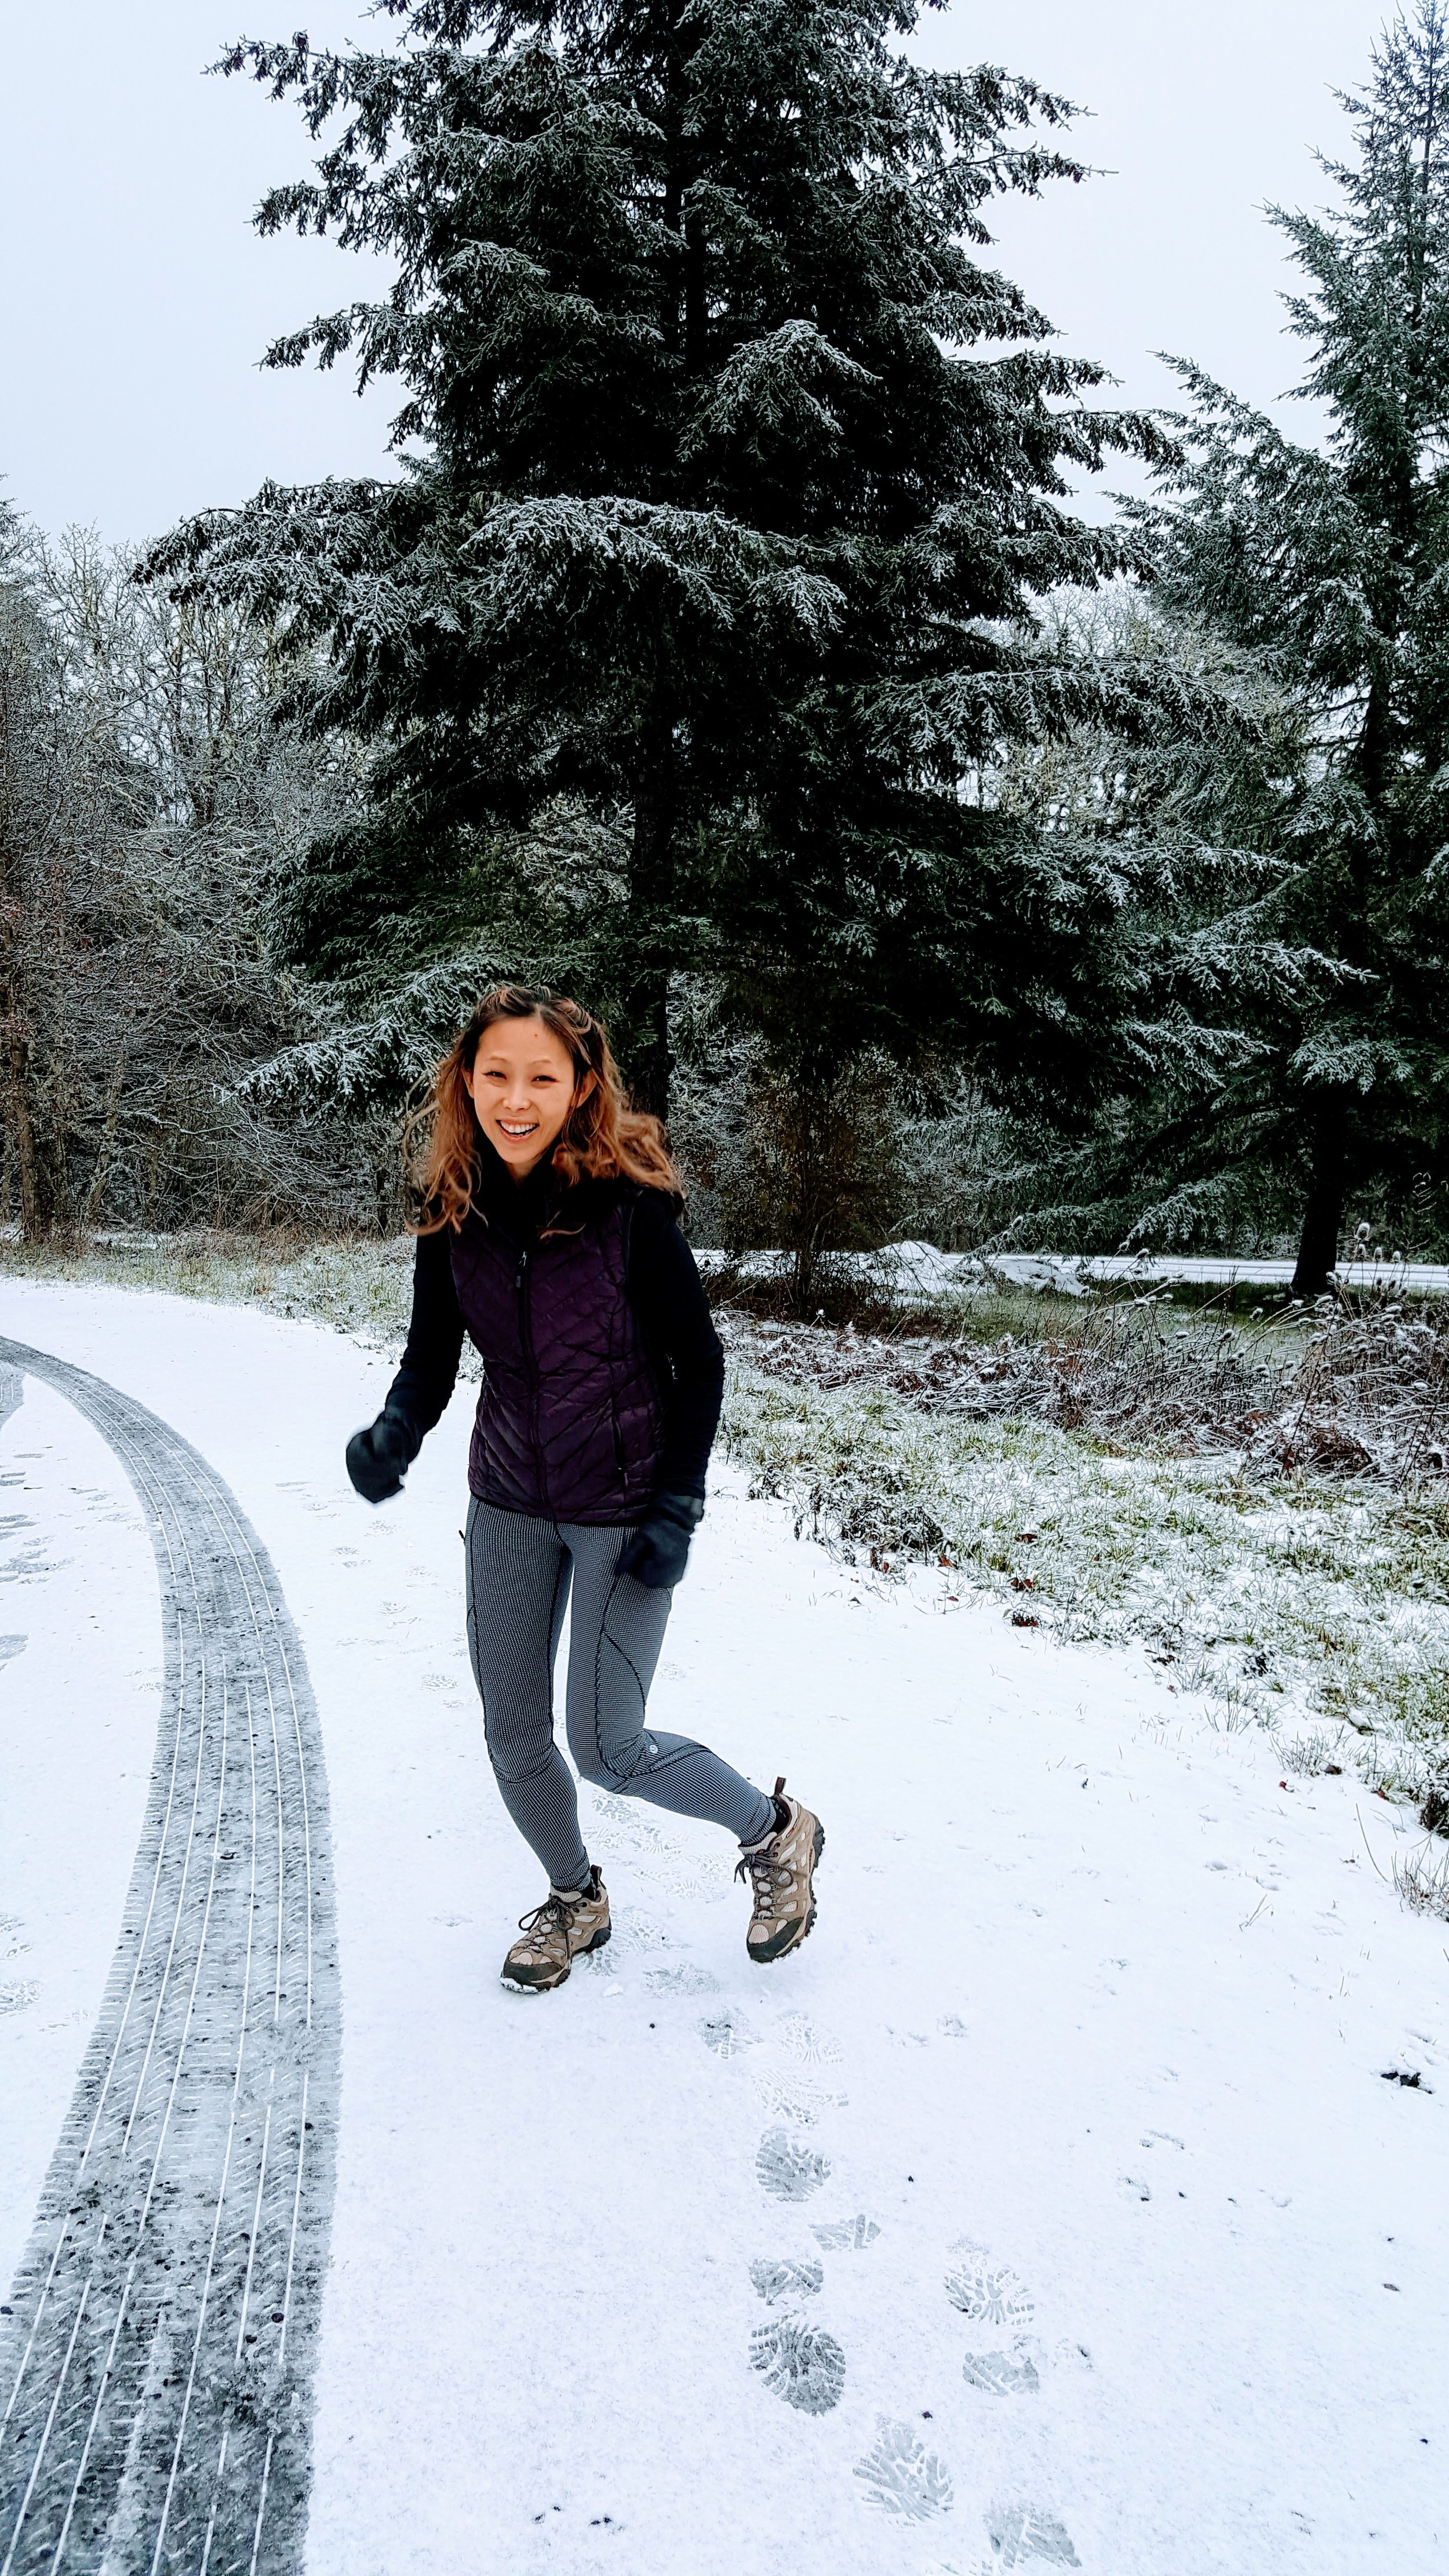 Crack a smile...have some fun! It will be Spring before we know it and you will already be on top of your game by staying fit throughout the hibernation season!